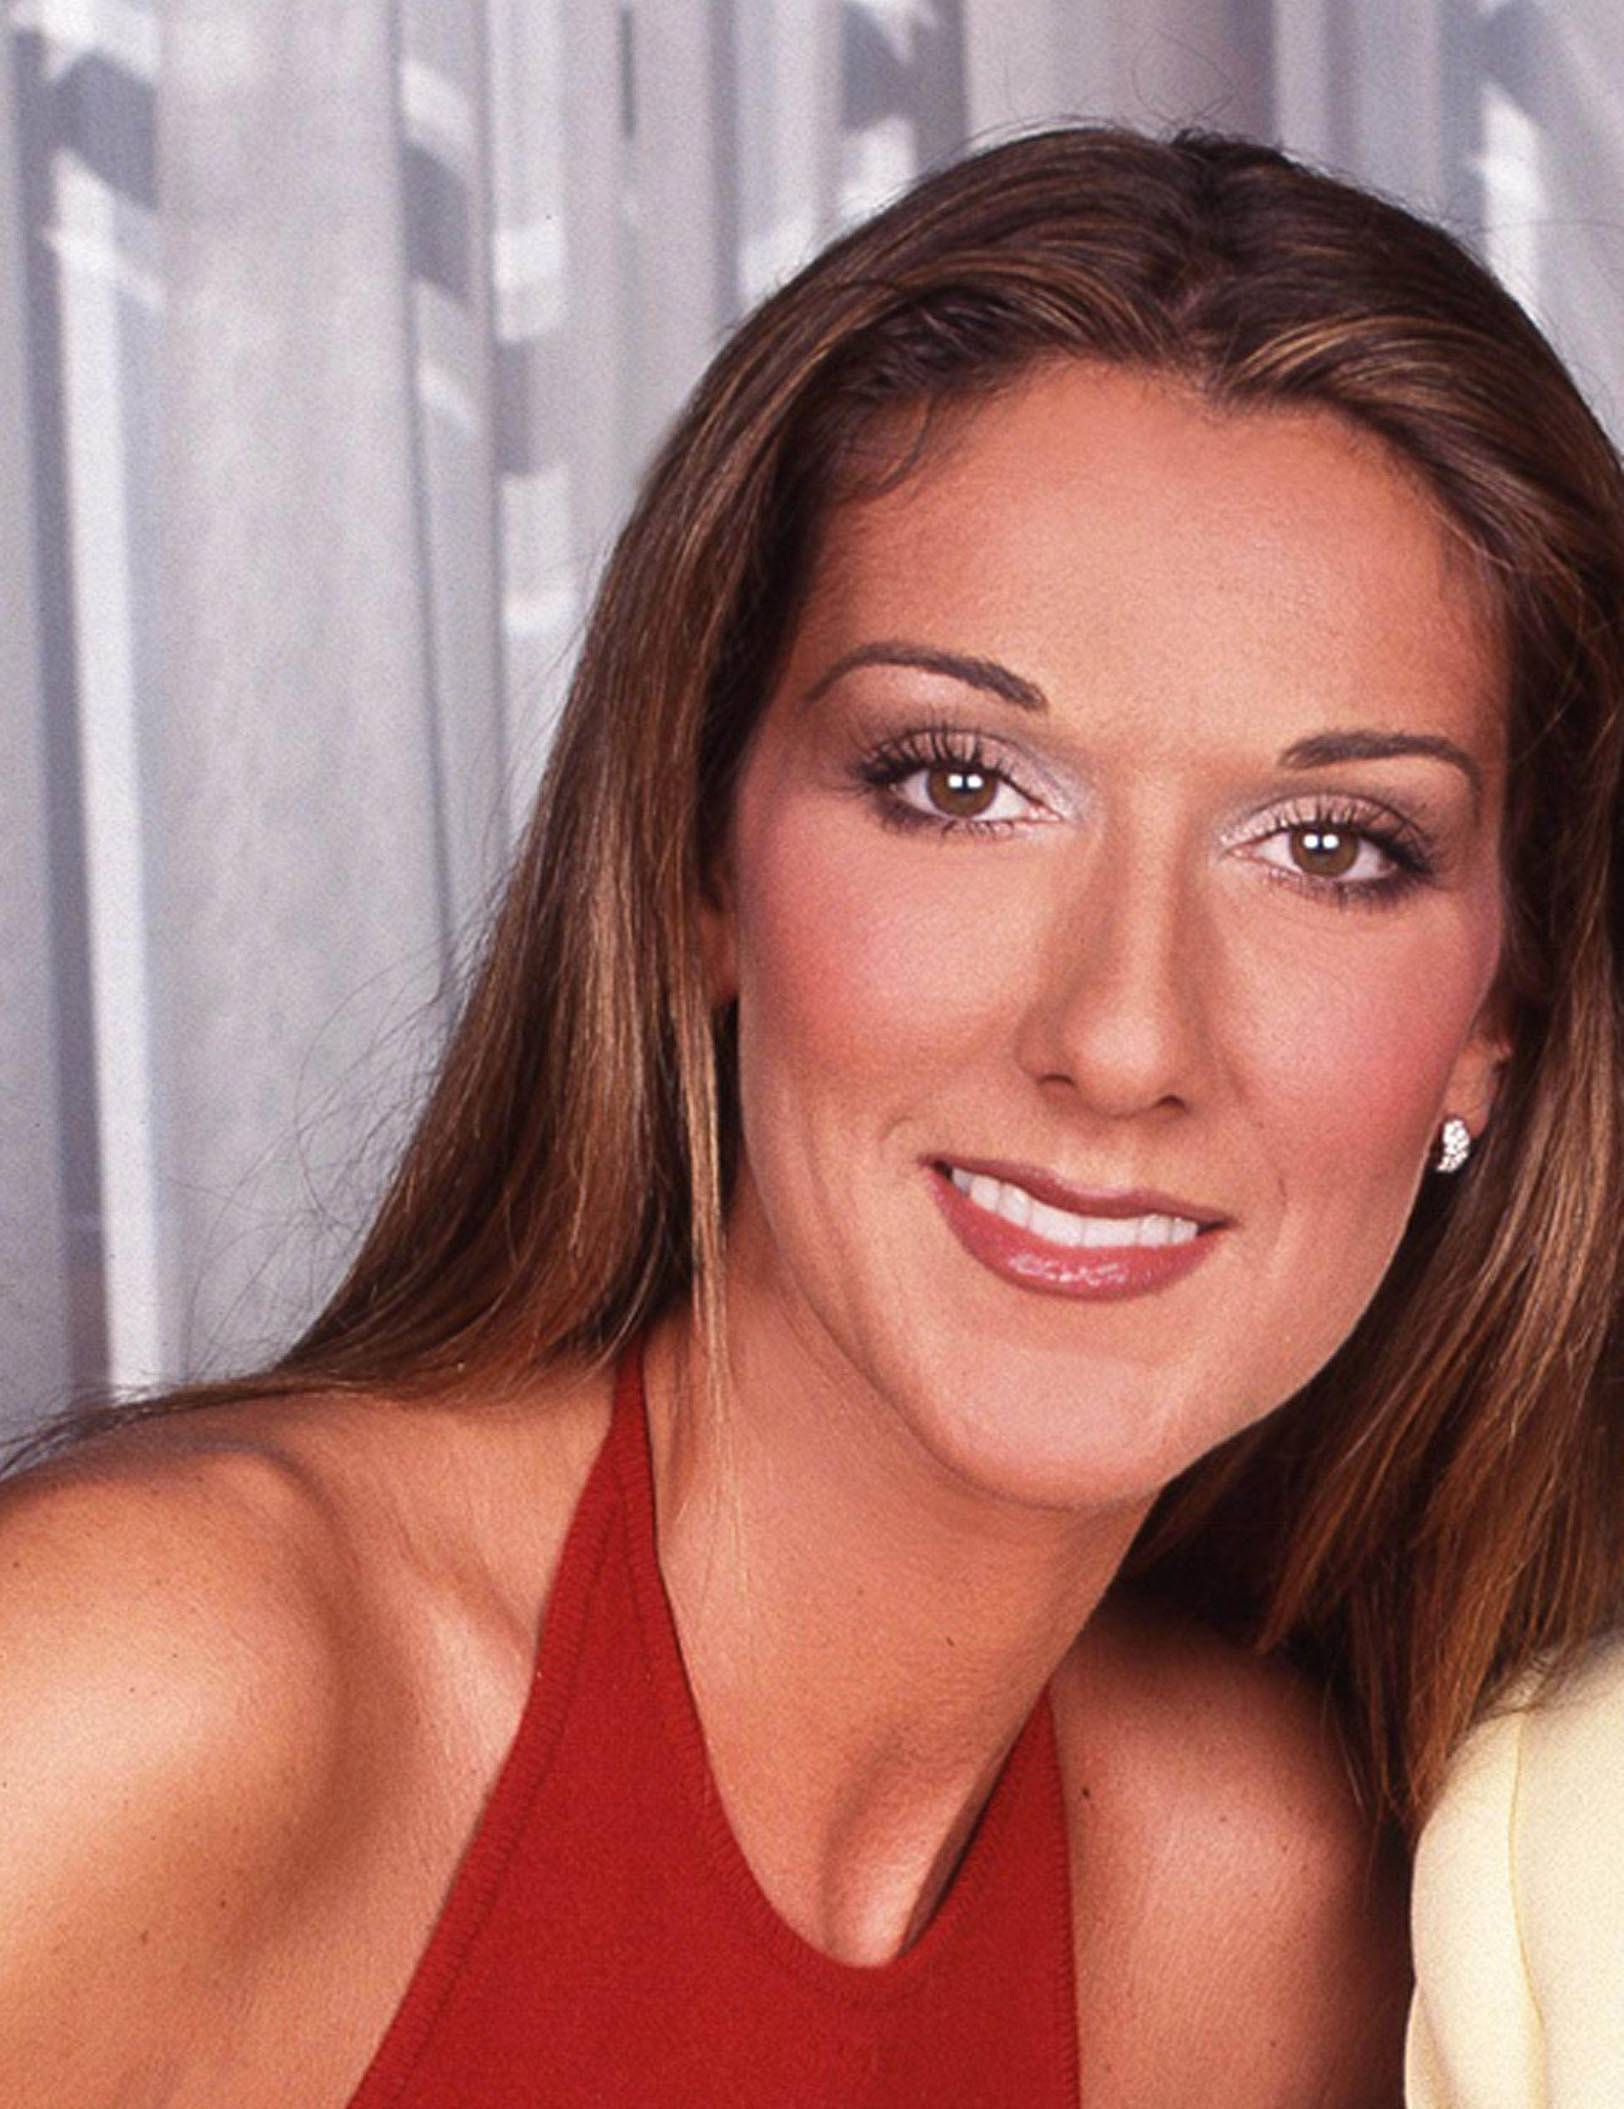 Selin Dion Celine Dion Celine Dion Photo 31565310 Fanpop